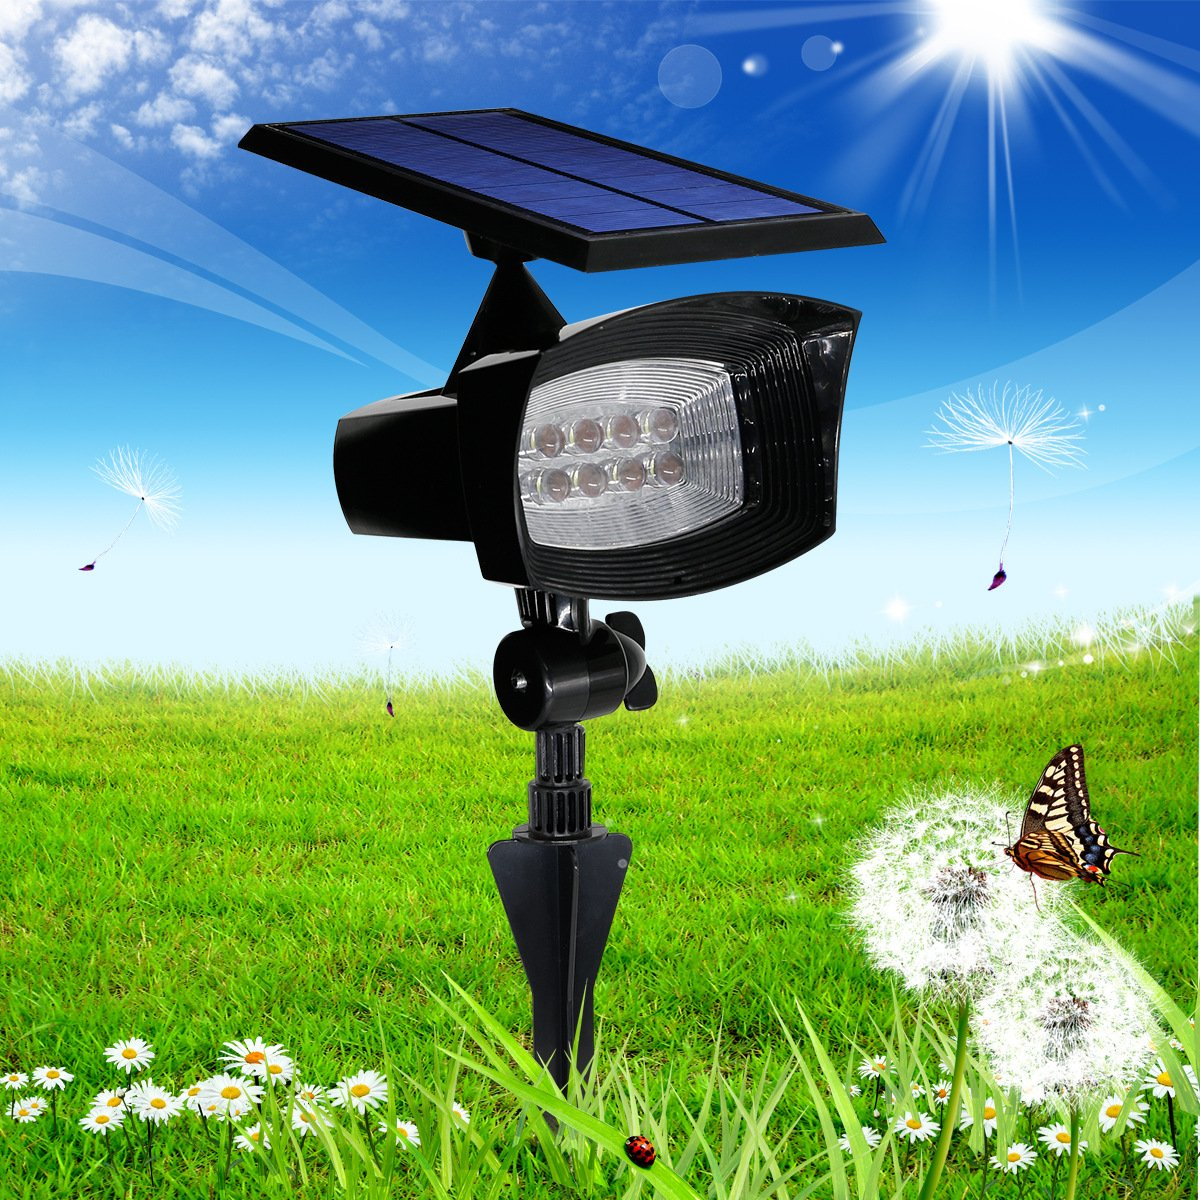 Solar Powered Landscape 8 LED Outdoor Waterproof Spot Light, Wall & In-ground Light for Patio